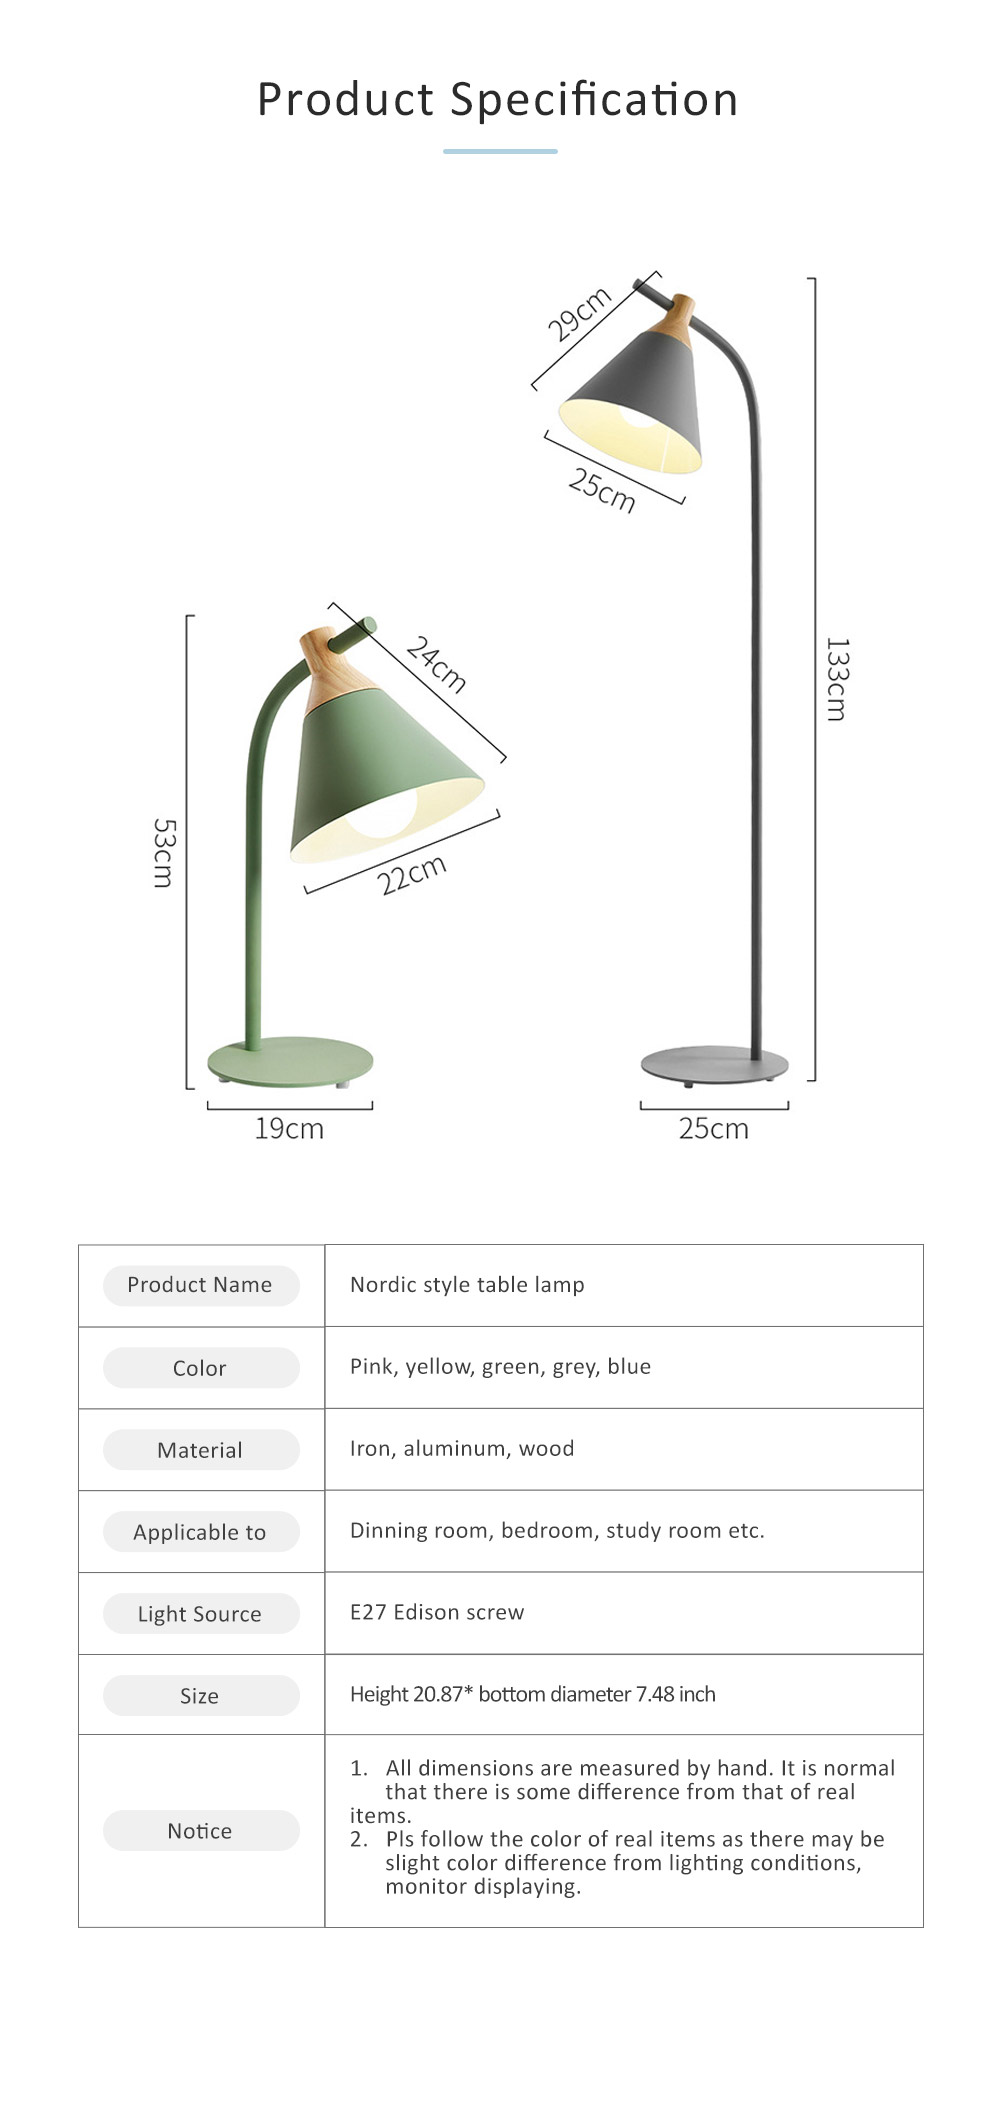 Nordic Style Table Lamp, Macaron LED Light for Office, Home, Eye Protection Working Essential LED Night Light 7